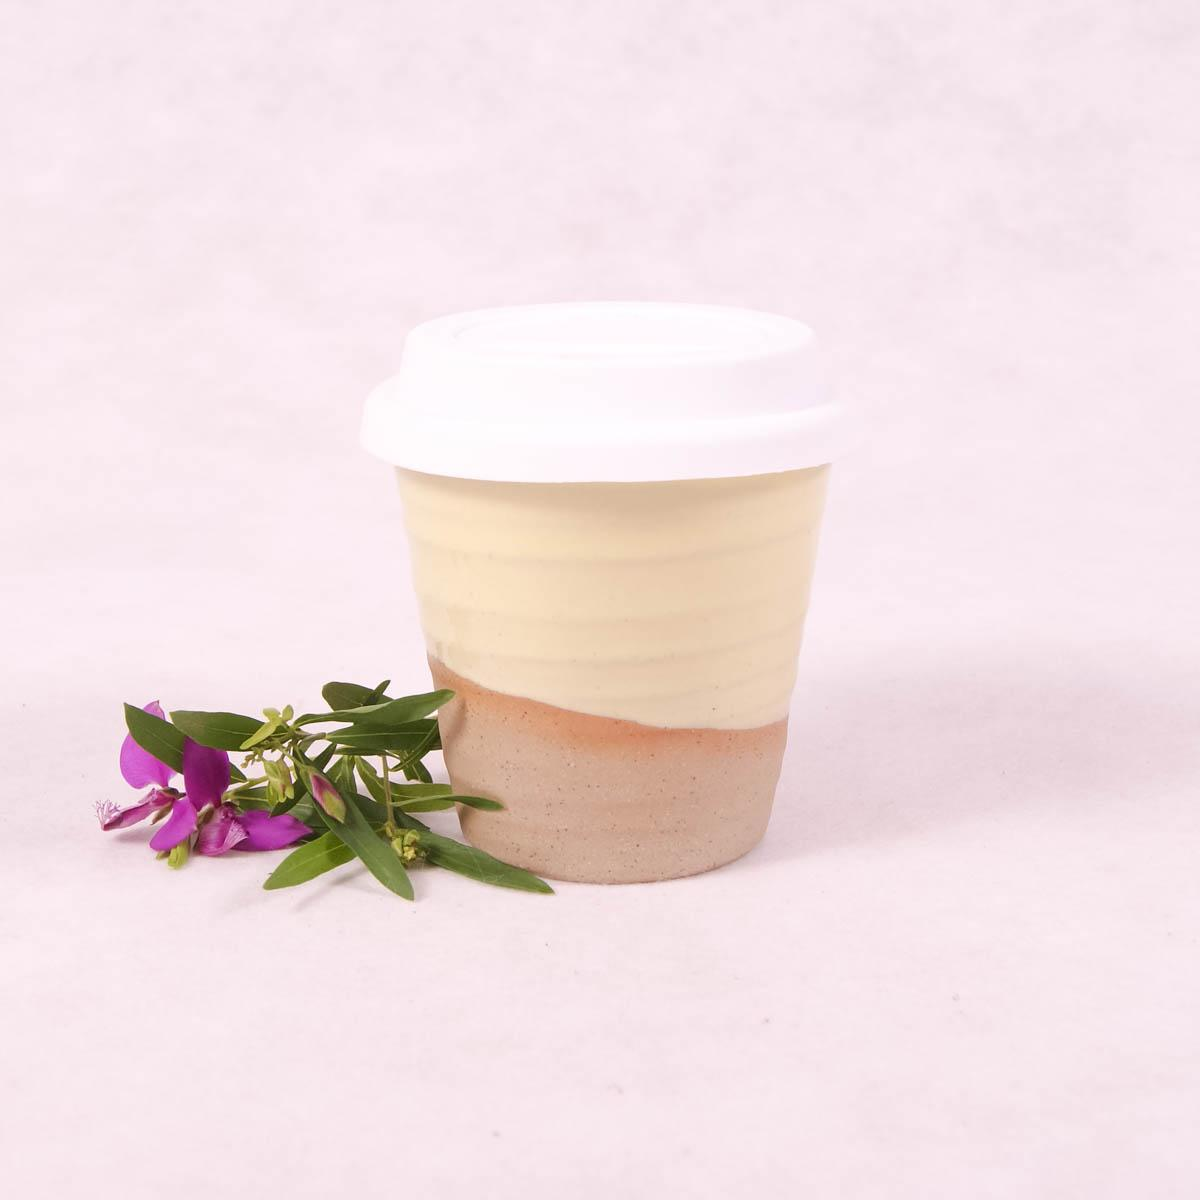 Winter Pastels Ceramic Carousel Cup Small - Lemon - Travel Cup - Throw Some Seeds - Australian gardening gifts and eco products online!